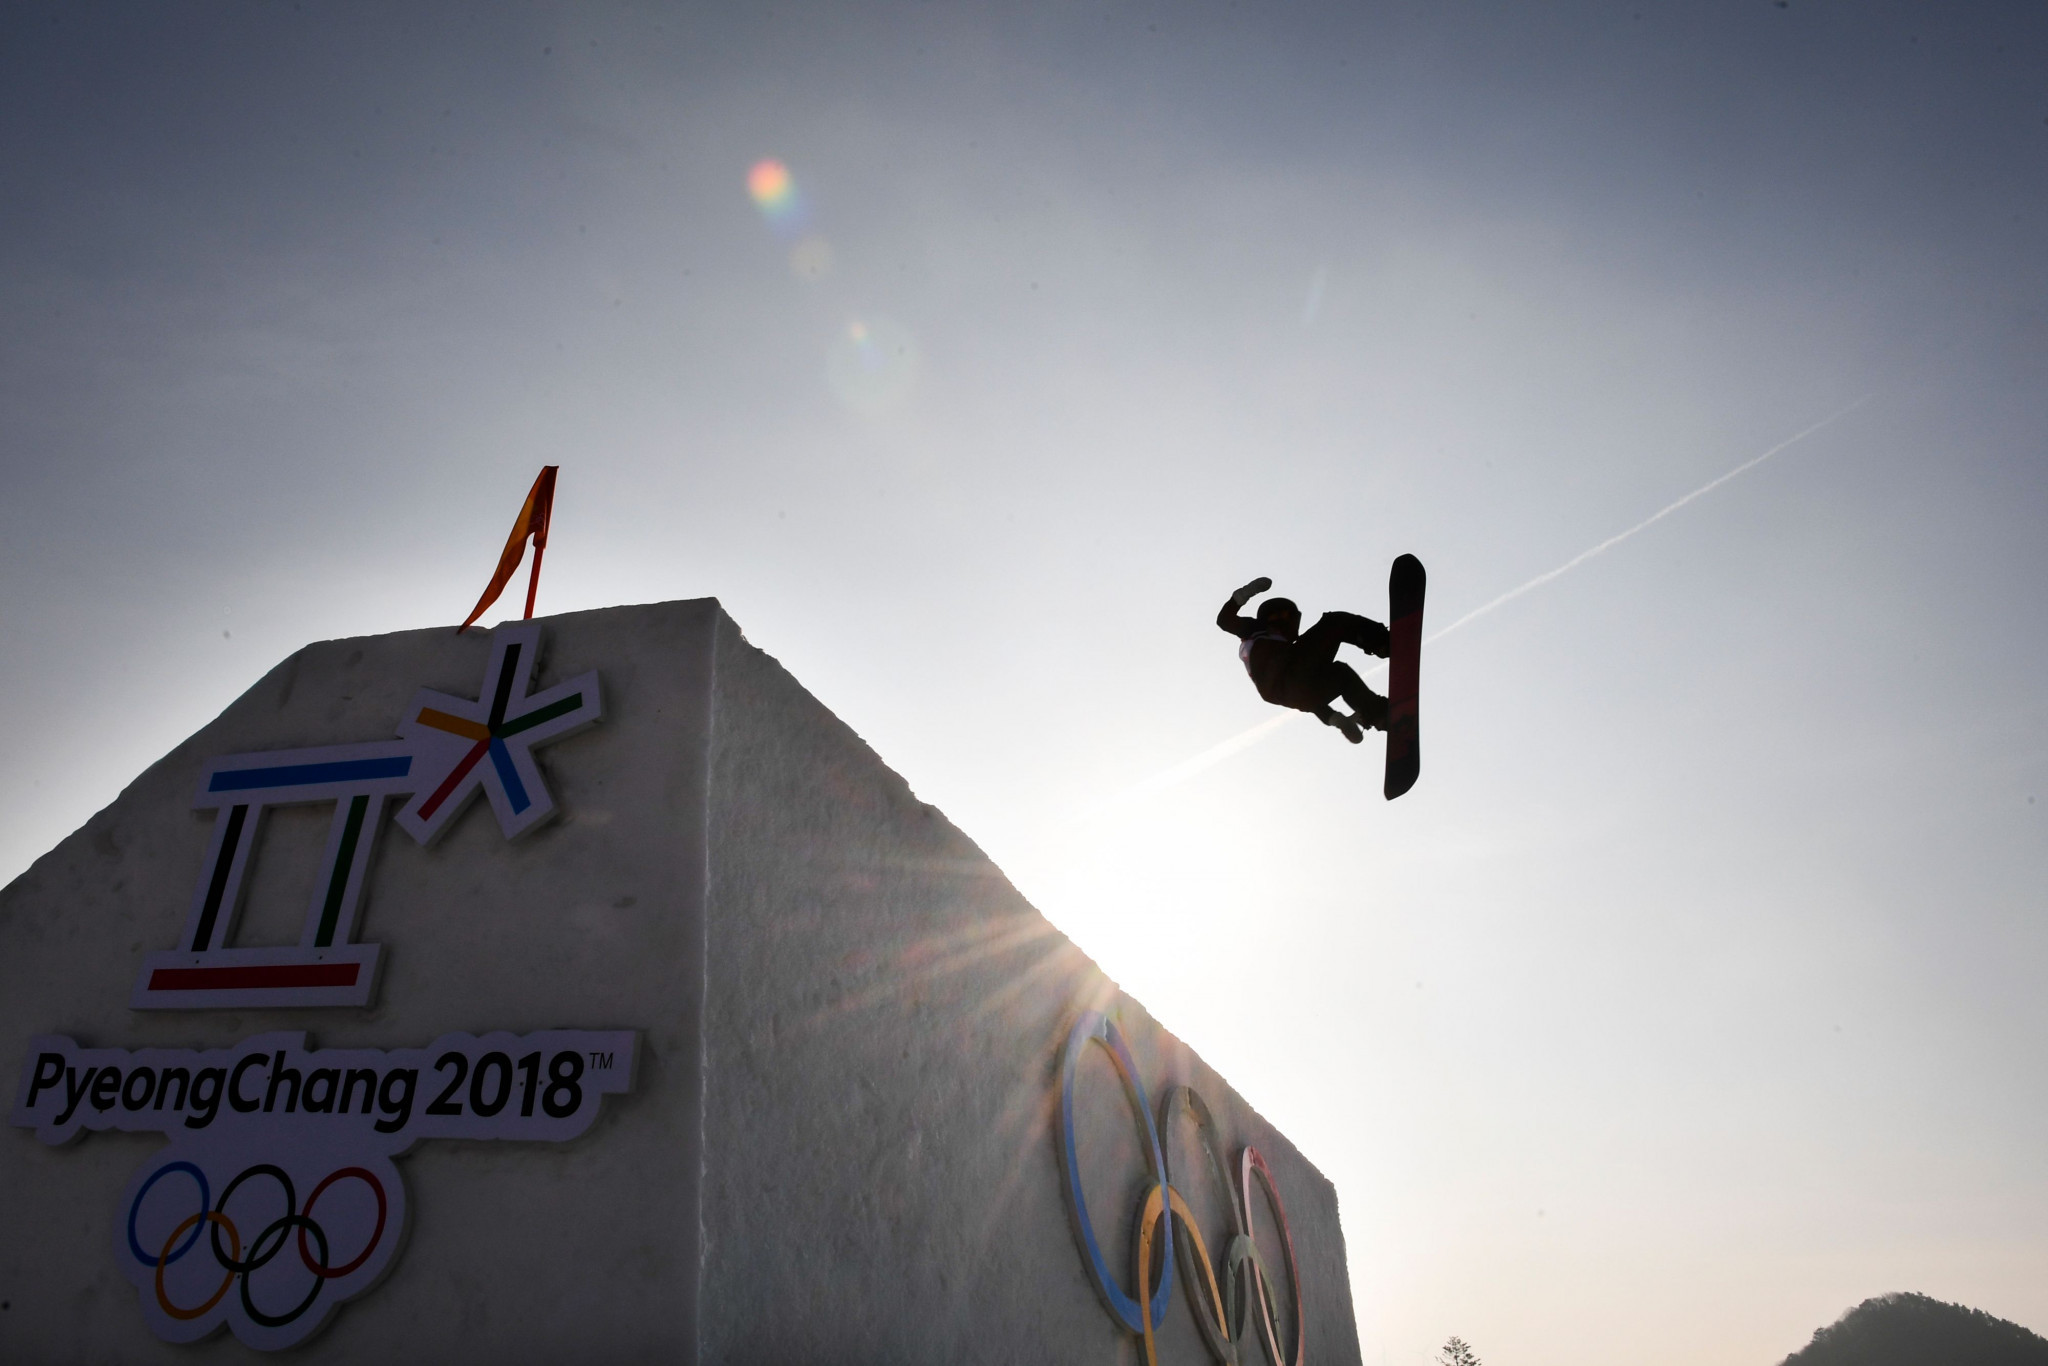 Modena to take over FIS World Cup big air event from Milan